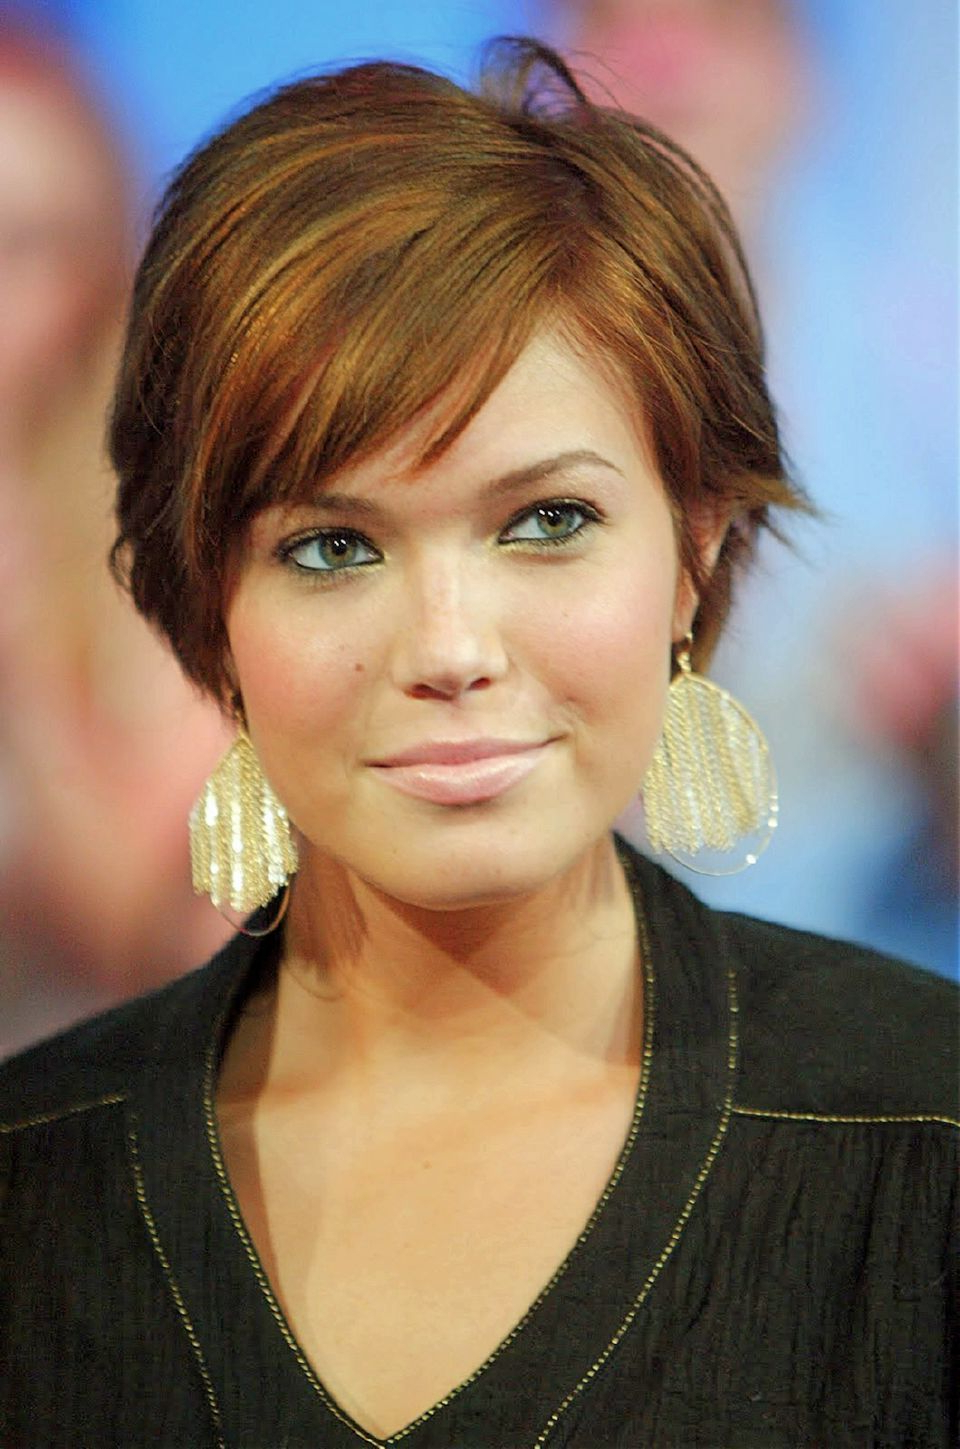 20 Short Hairstyle Ideas For Round Faces: Chic Haircuts You Have To Pertaining To Short Haircuts Ideas For Round Faces (View 10 of 25)